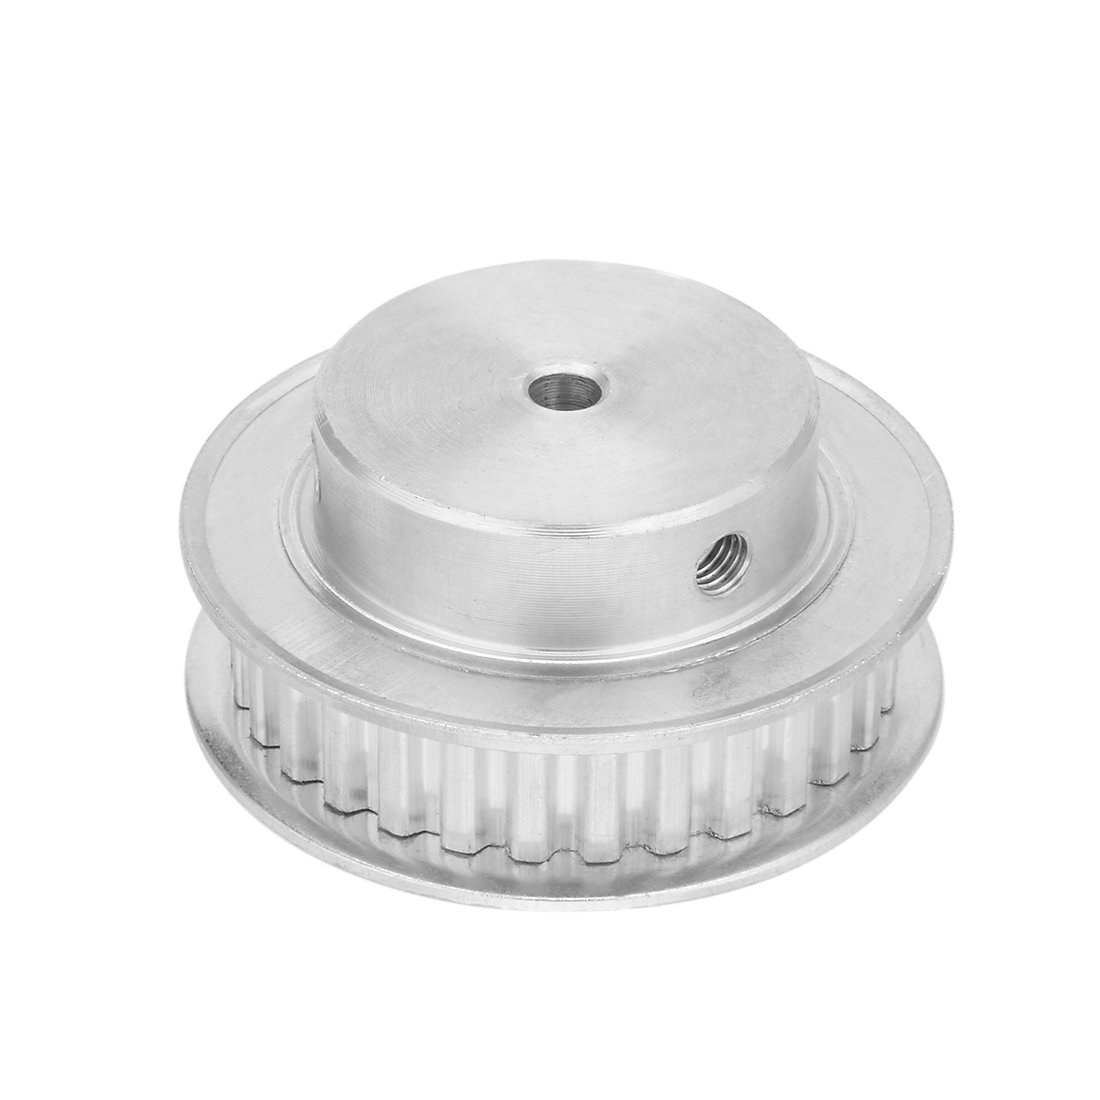 uxcell Aluminum XL 30 Teeth 5mm Bore Timing Belt Idler Pulley Flange Synchronous Wheel for 10mm Belt 3D Printer CNC